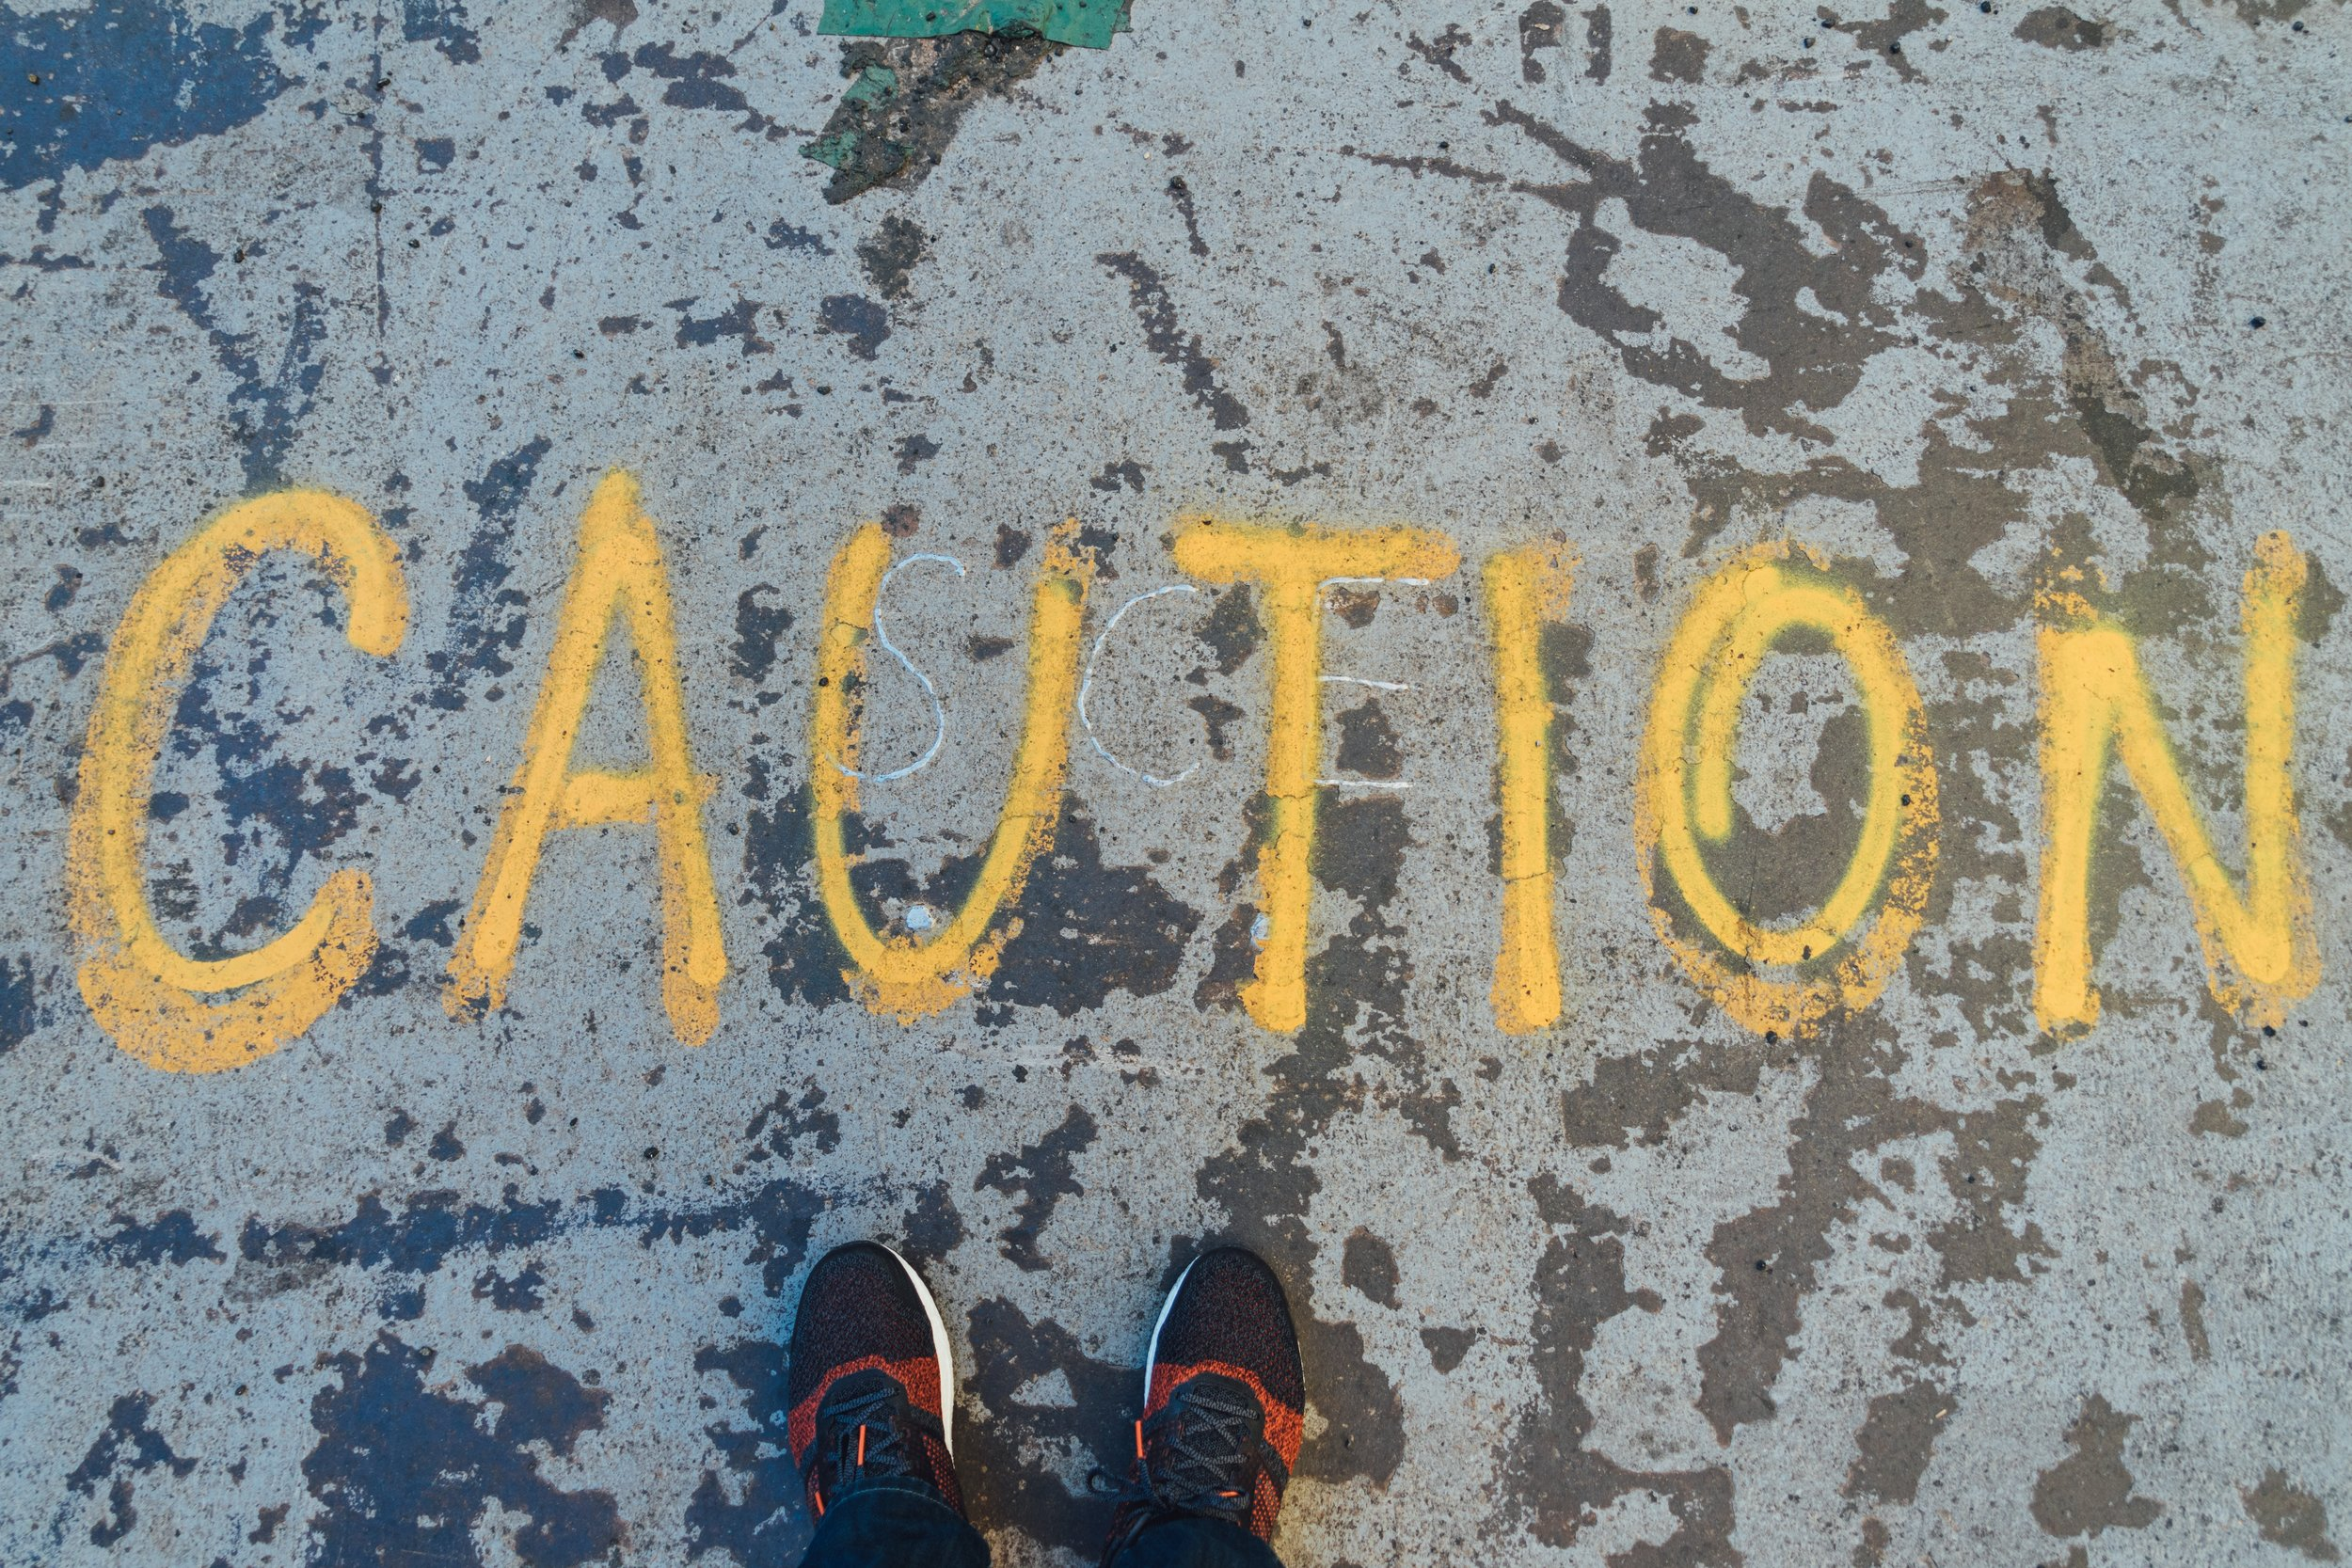 [Image description: The word 'Caution' is written on pavement in yellow chalk/paint and in all capital letters. A person stands just in front of it.]